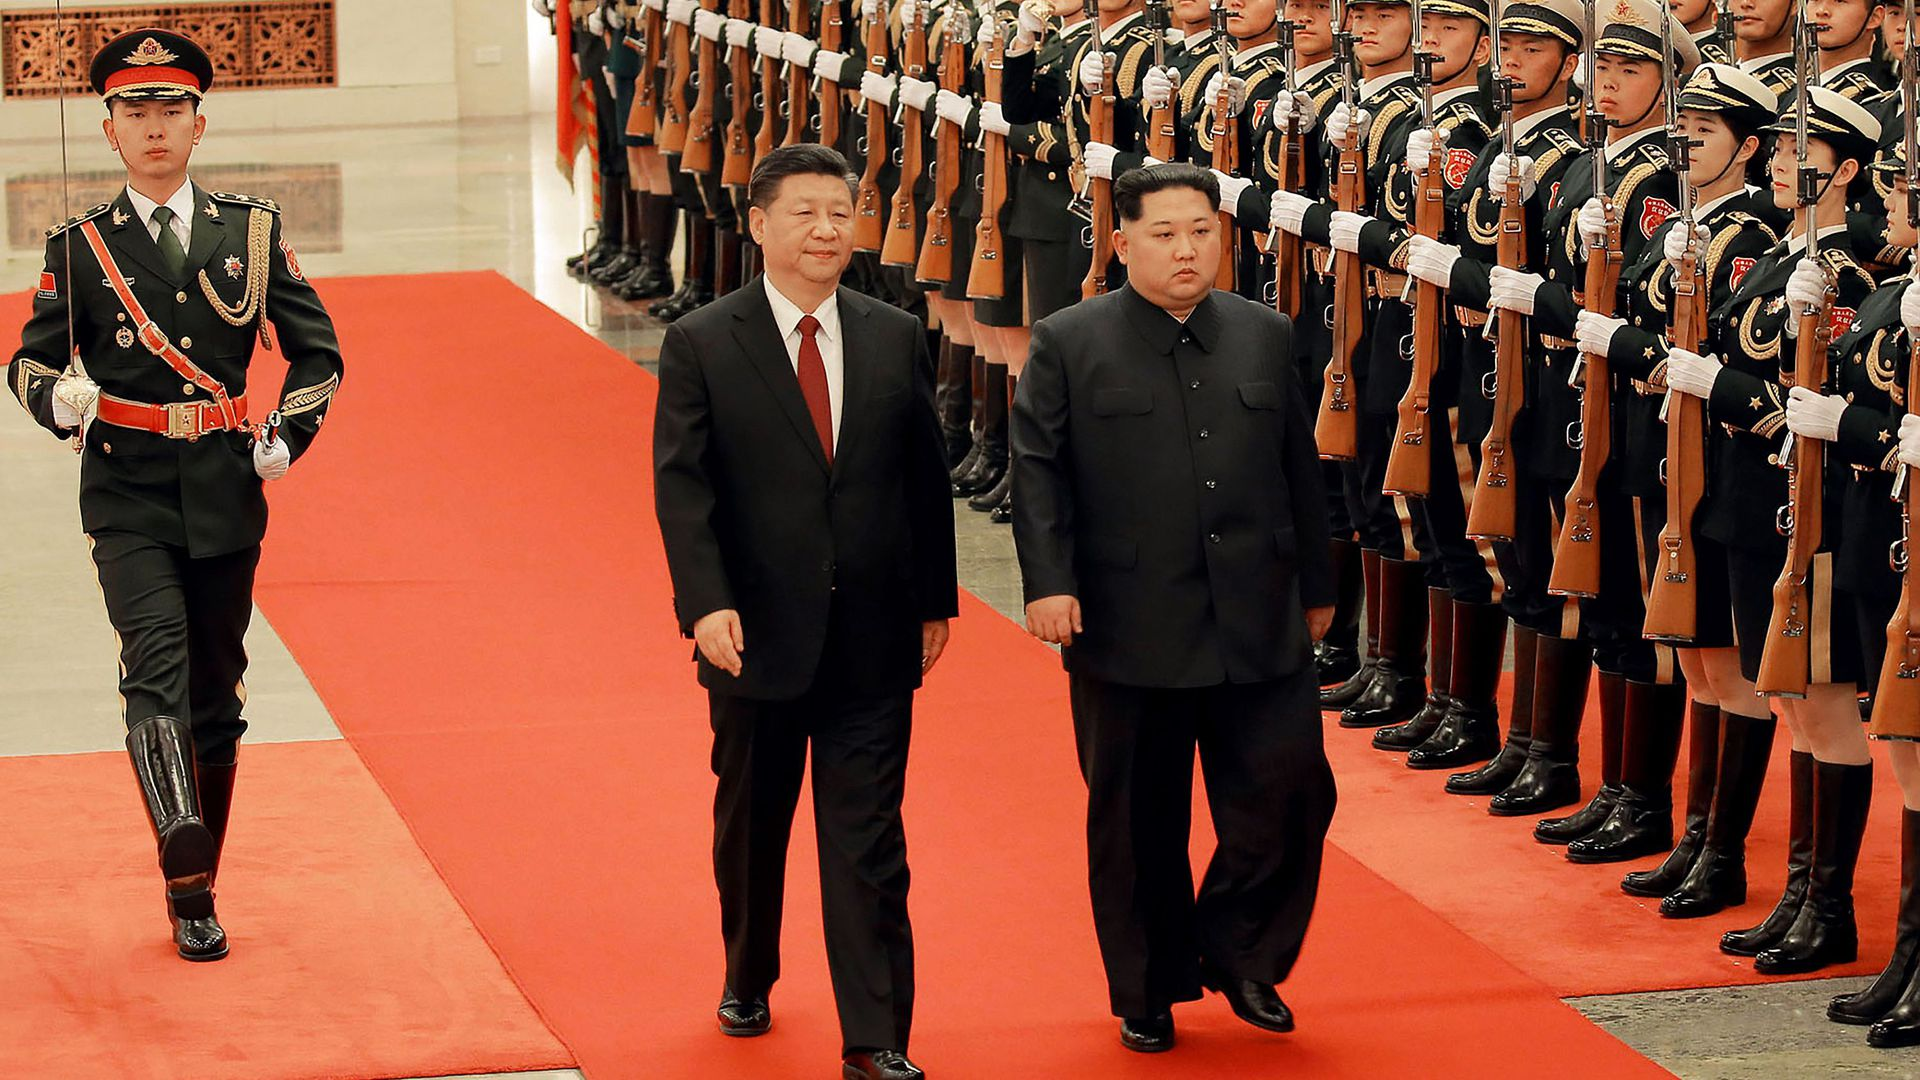 Chinese President Xi and North Korean Leader Kim march down red carpet next to line of soldiers together during their surprise meeting in Beijing